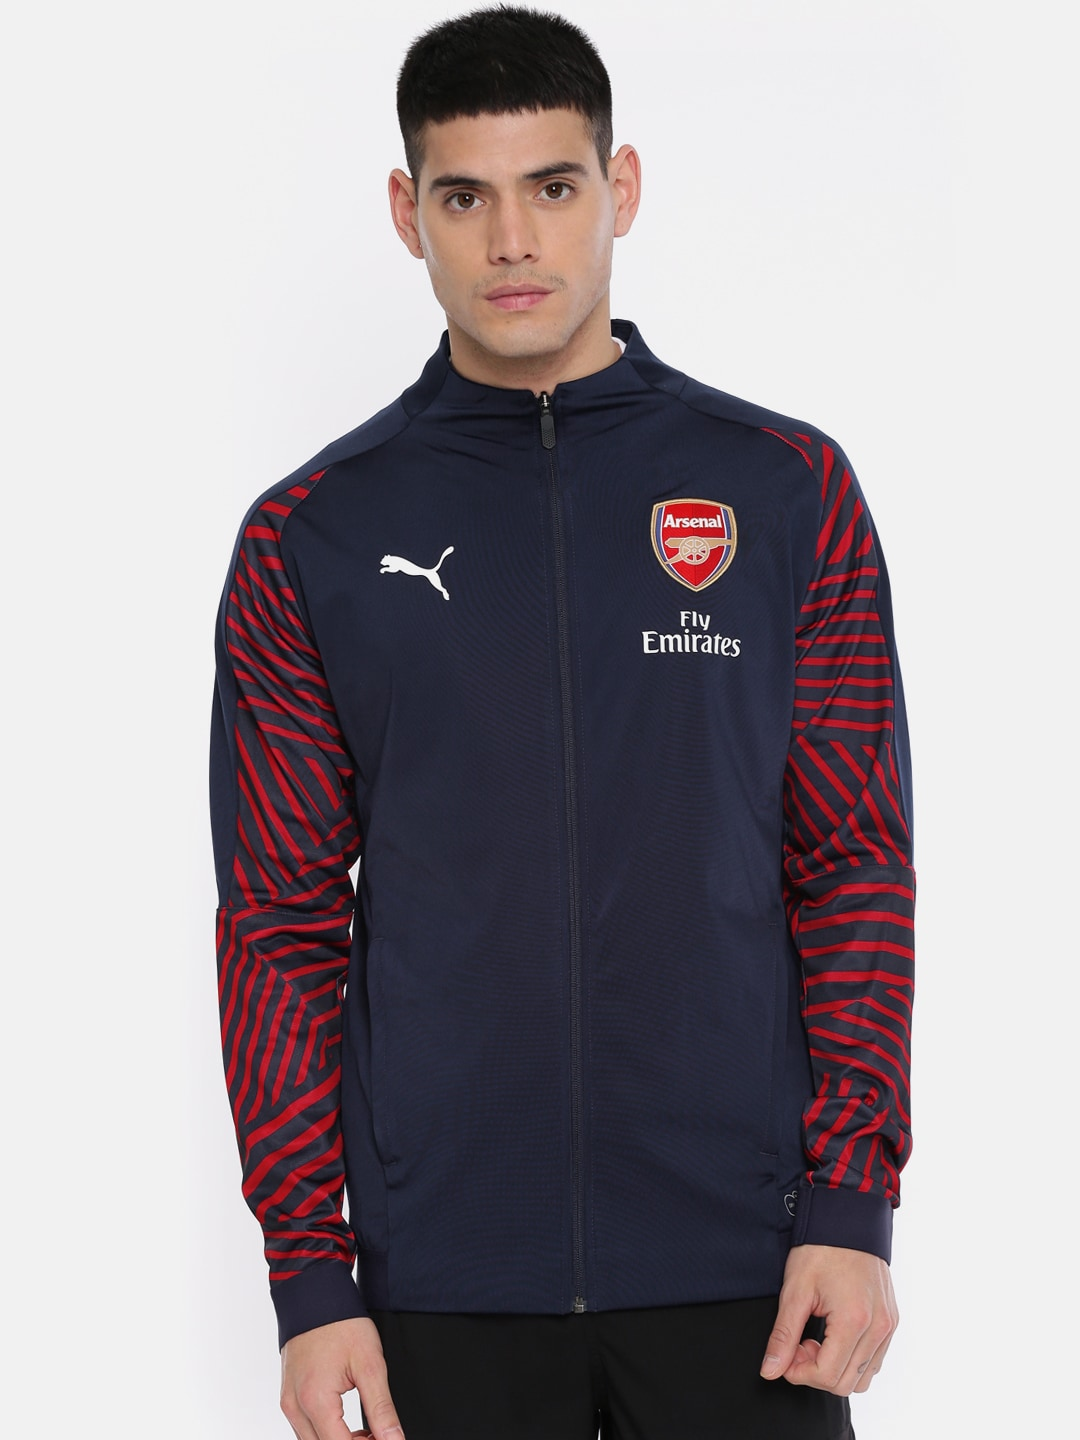 Puma Jacket Buy Original Puma Jackets Online In India Myntra